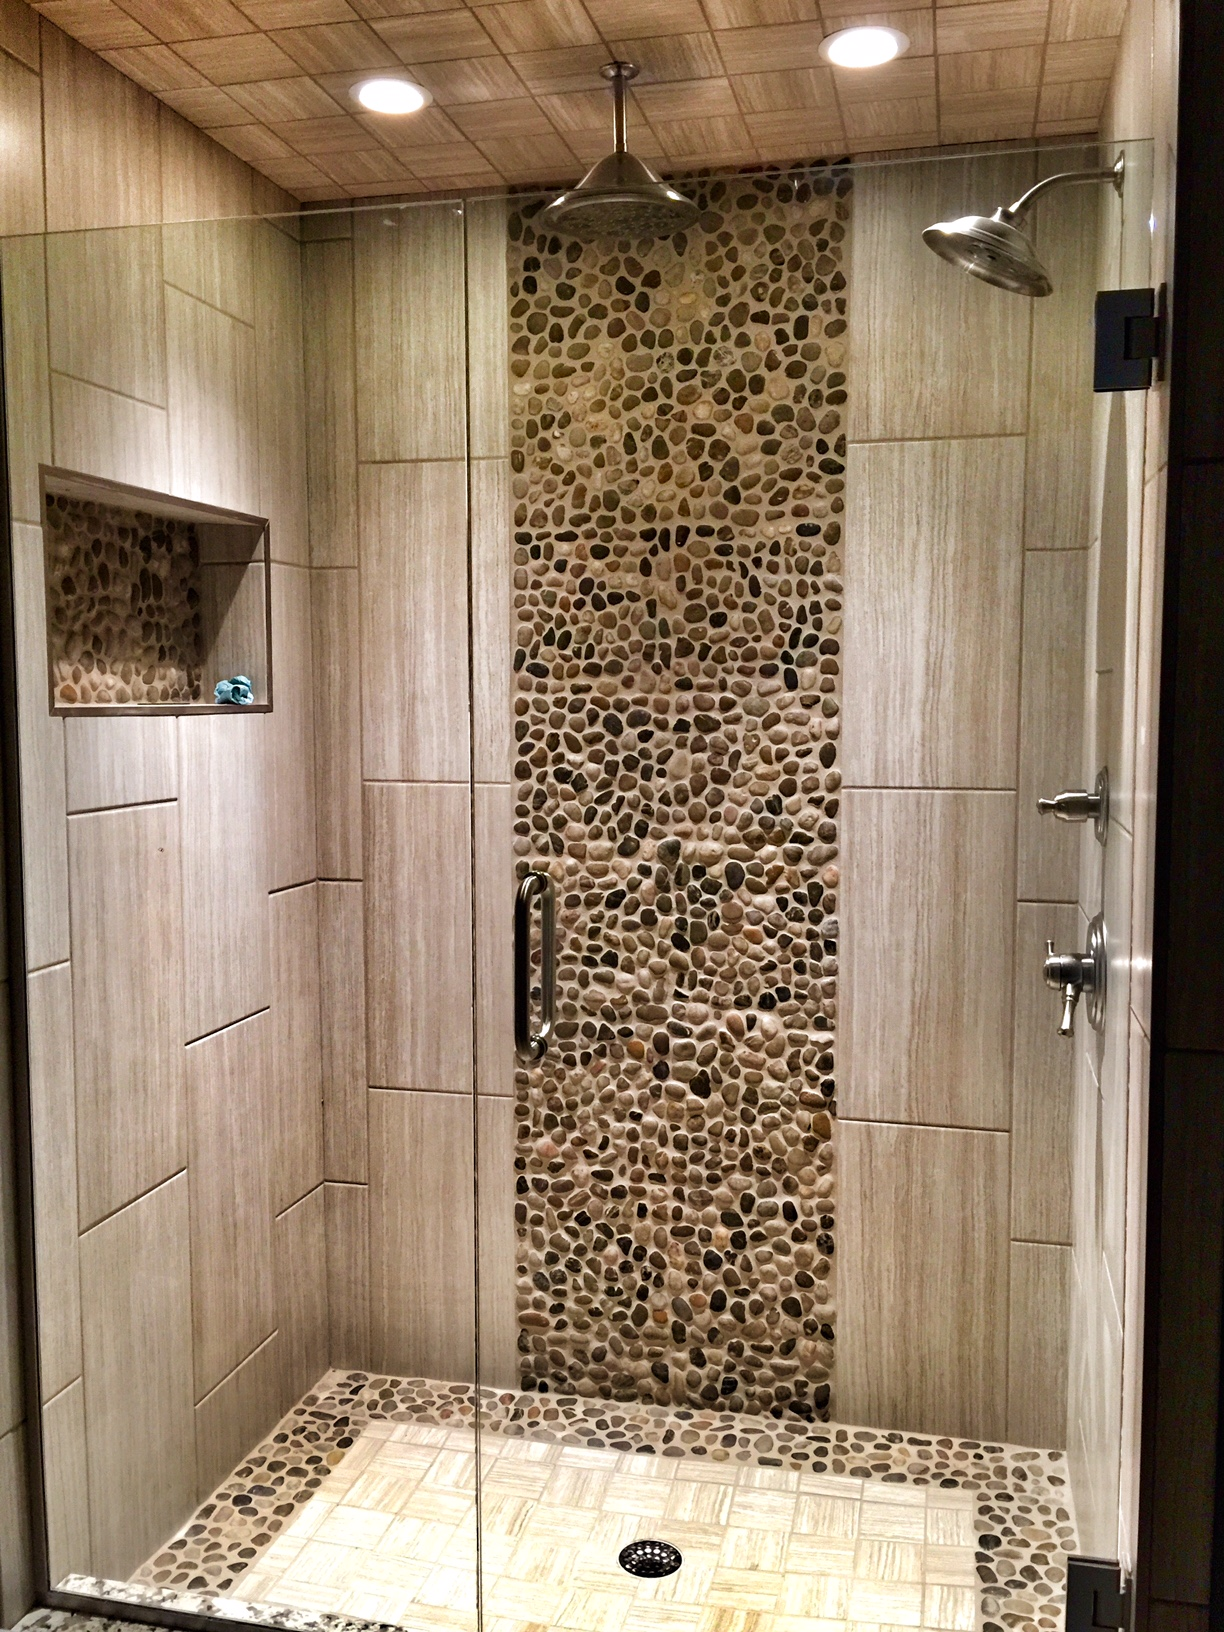 Salad-Pebble-Shower-Tile.JPG